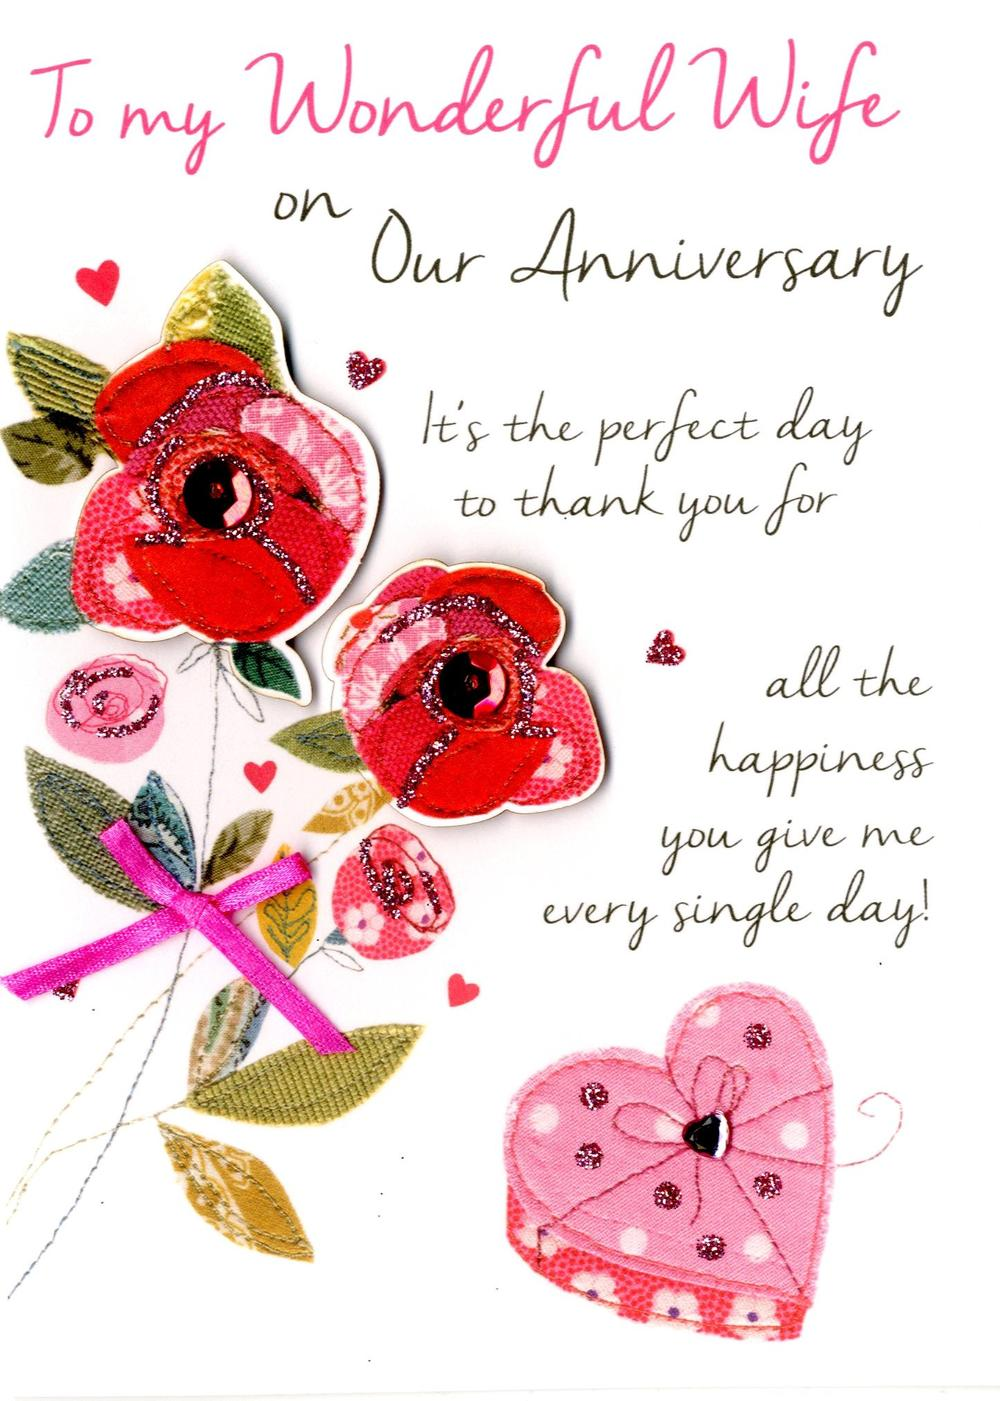 Wife On Our Anniversary Greeting Card